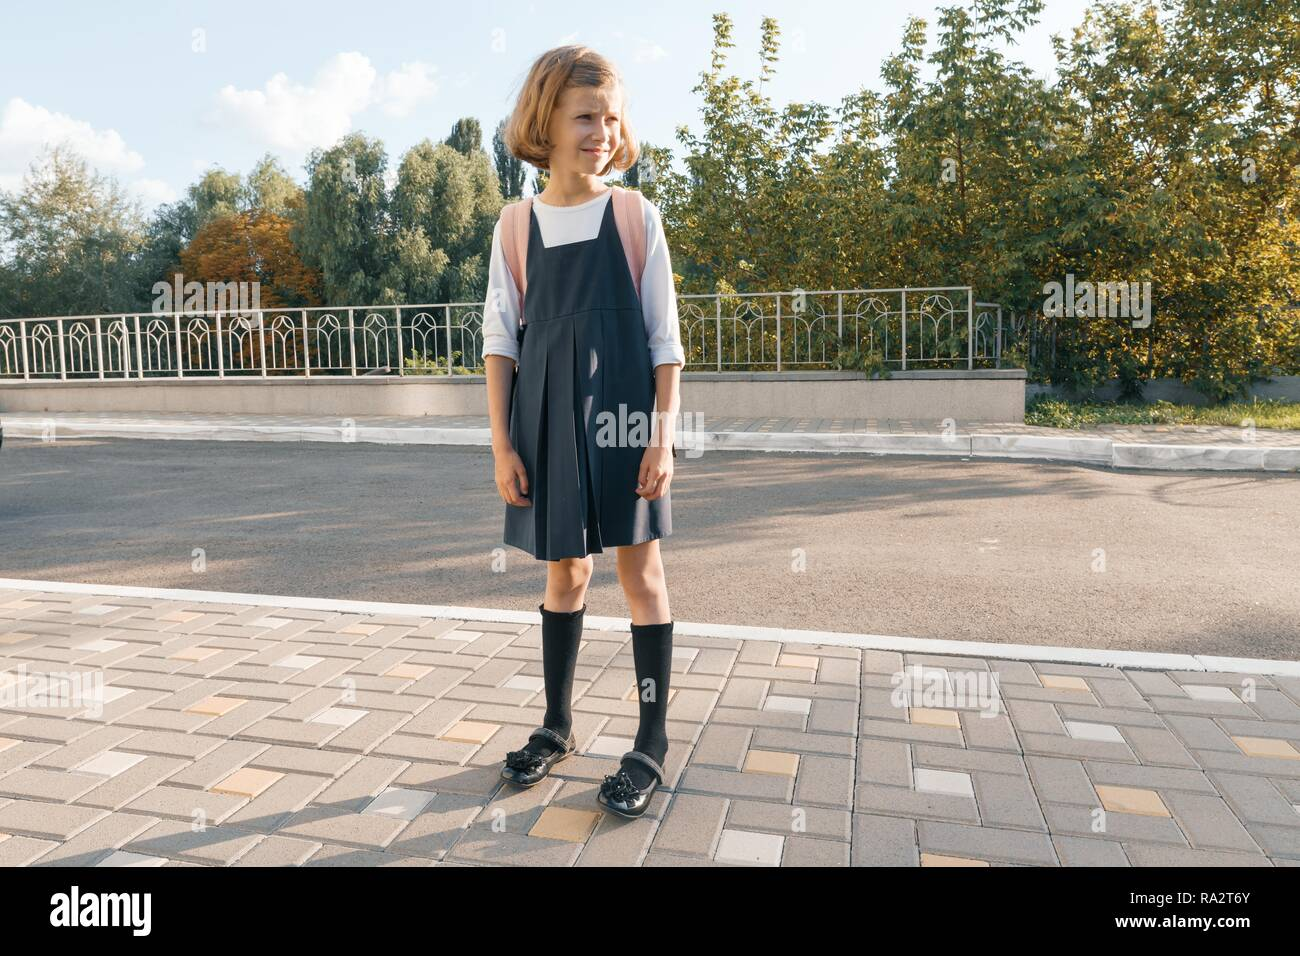 Outdoor portrait of a small student, girl with glasses, uniform with backpack. School, education, knowledge and children. - Stock Image